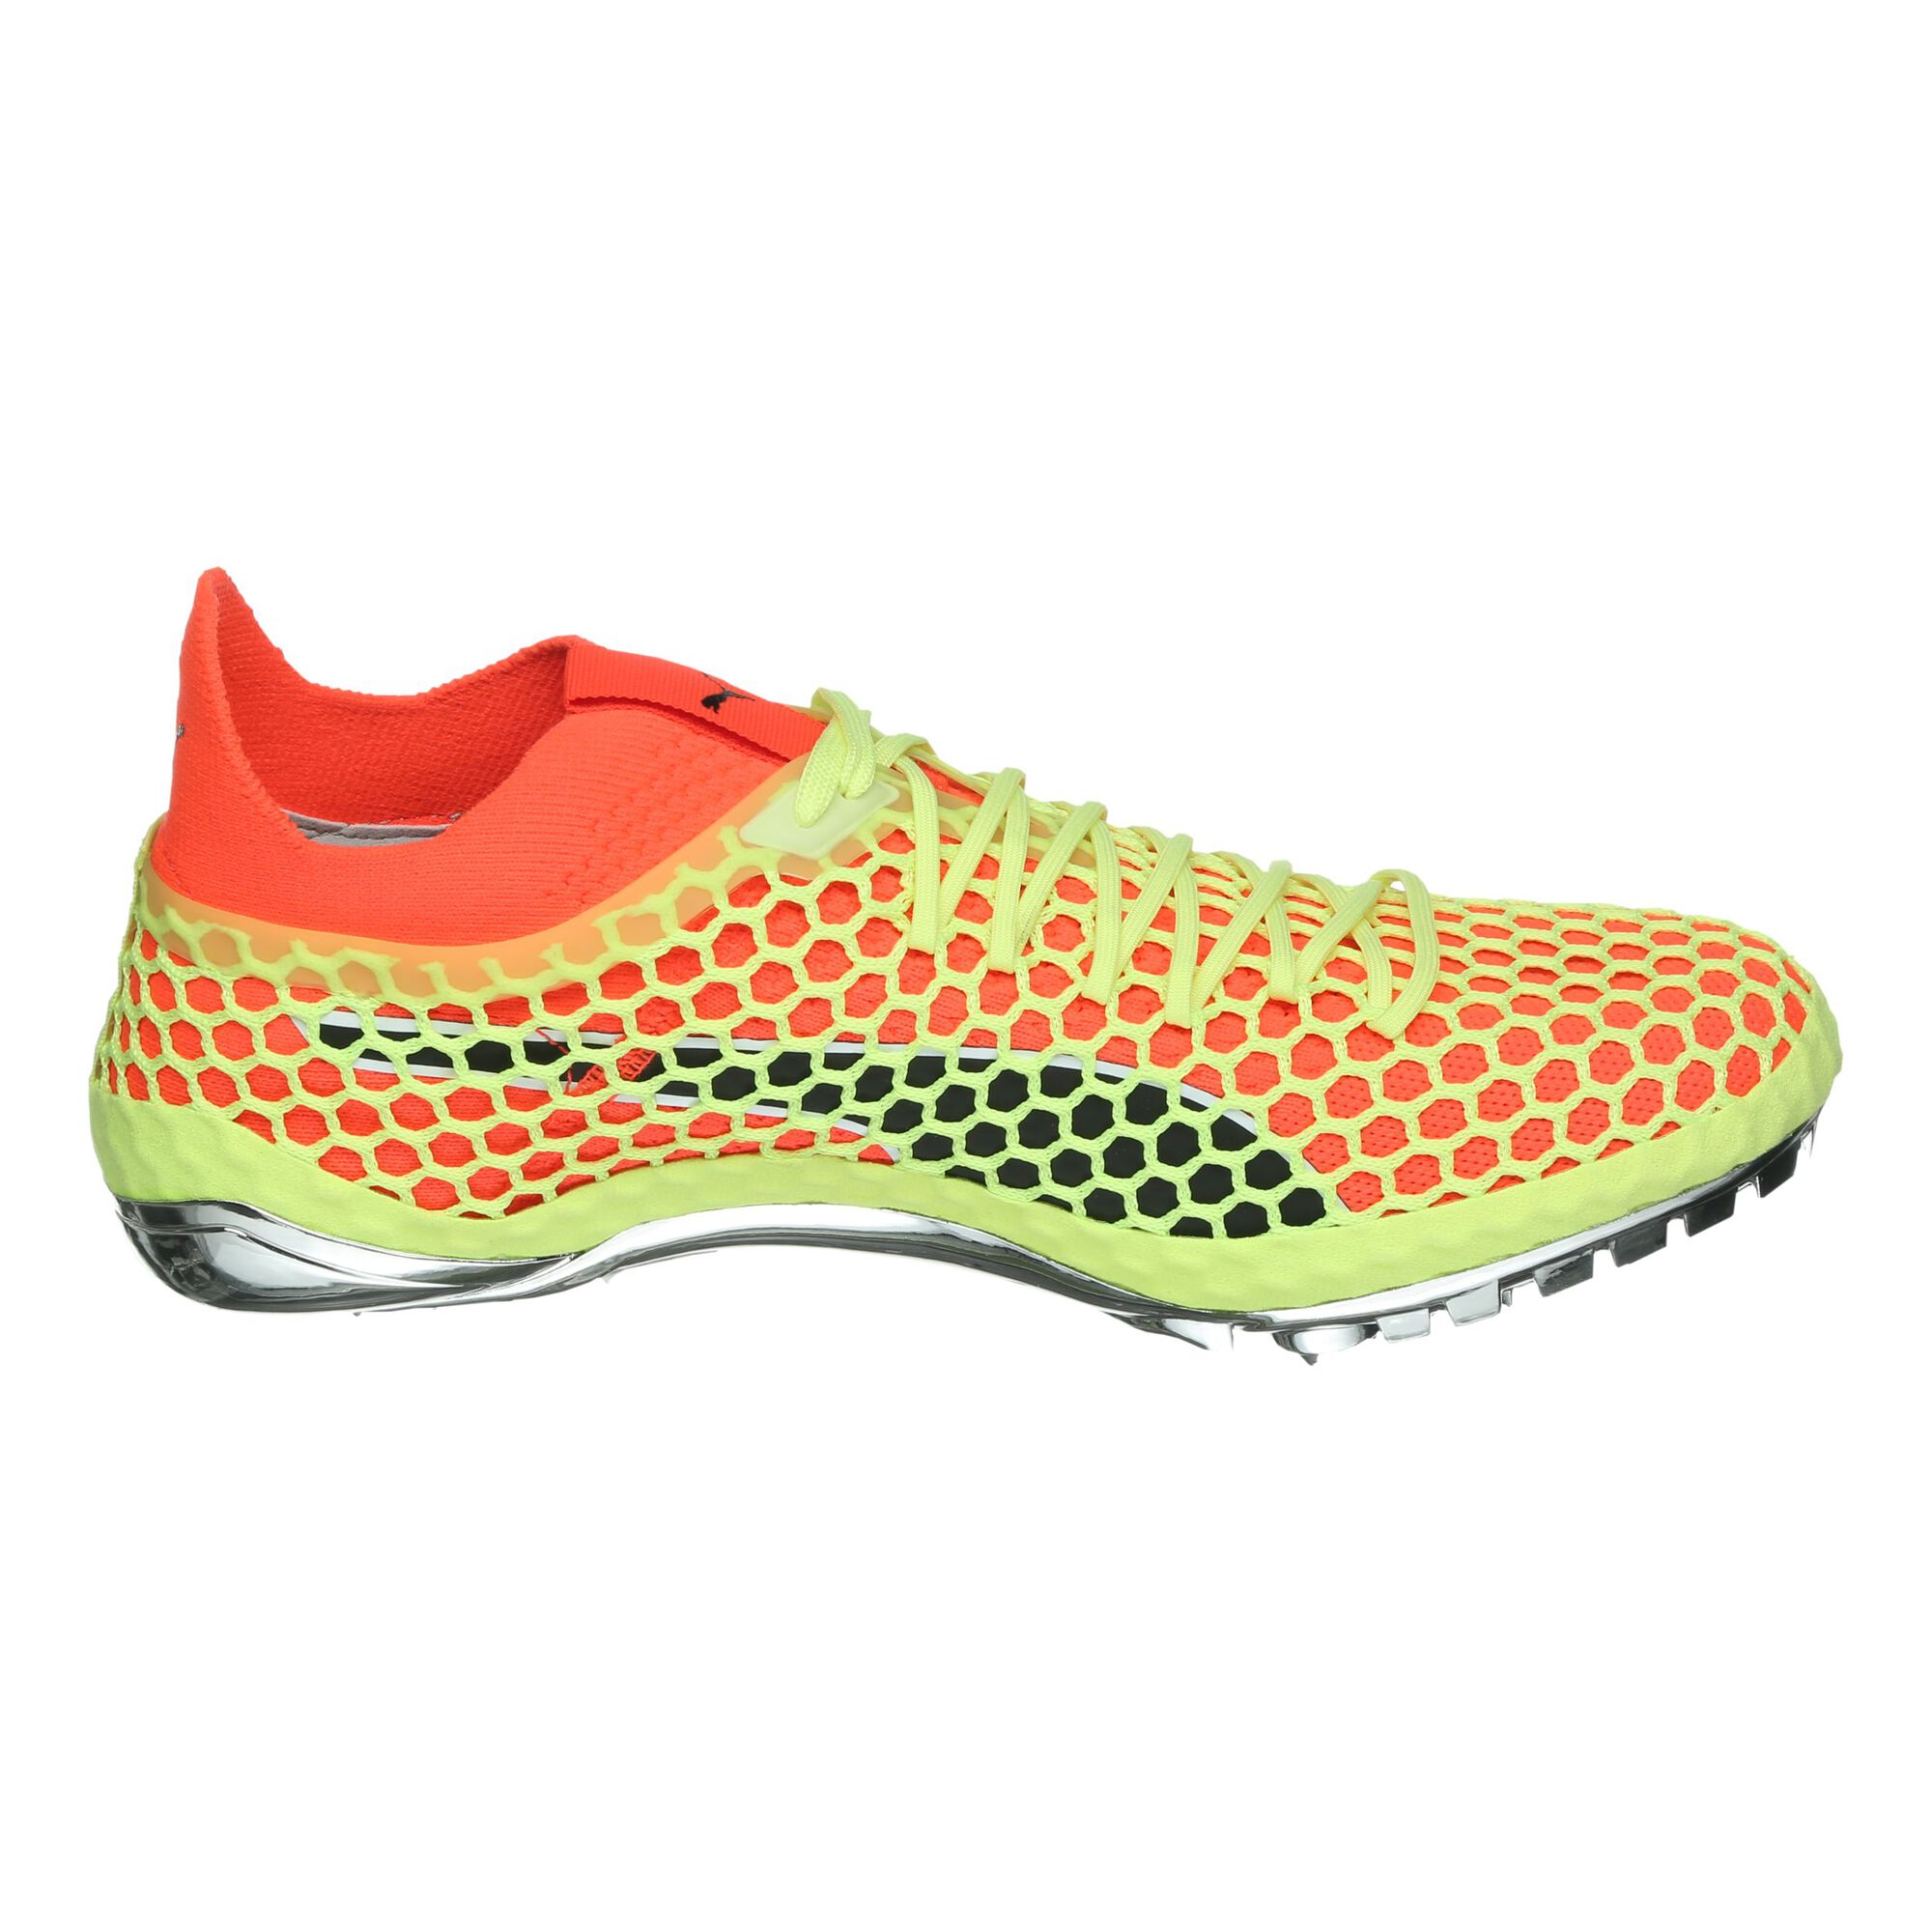 09e372d6ec buy Puma EvoSPEED NETFIT Sprint Spike Shoes Men - Neon Yellow ...